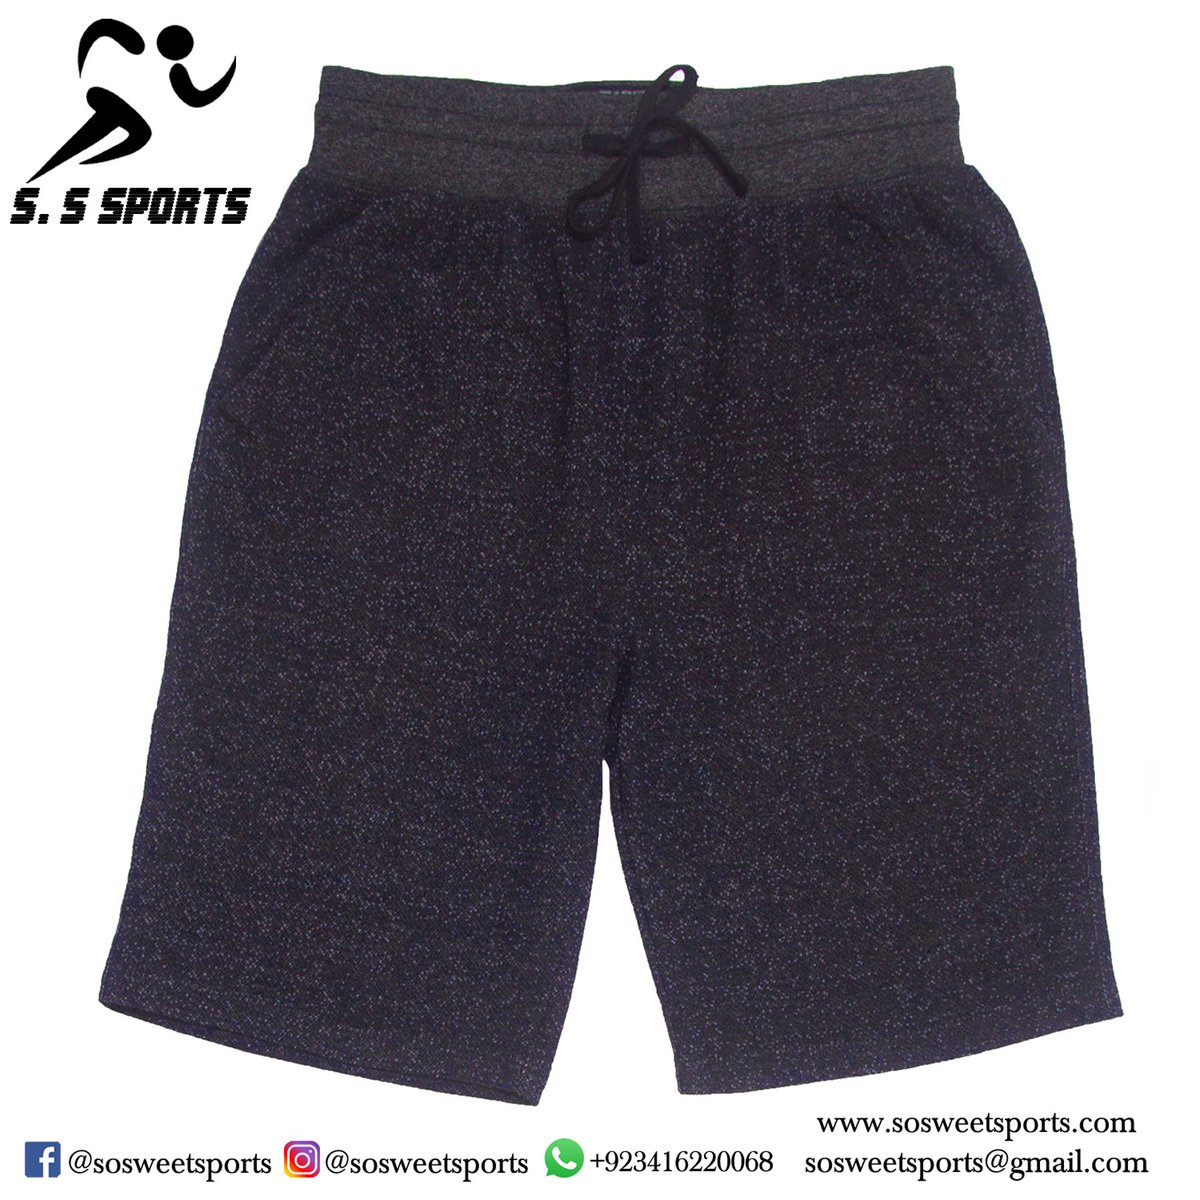 http://www.sosweetsports.com We are manufacturer and Exporter of #activewear #sportswear #causalwear  & #streetwear  Worldwide . gmail:sosweetsports@gmail.com Insta page:sosweetsports WhatsApp:+92-341-622-0068pic.twitter.com/GqRncJZosb